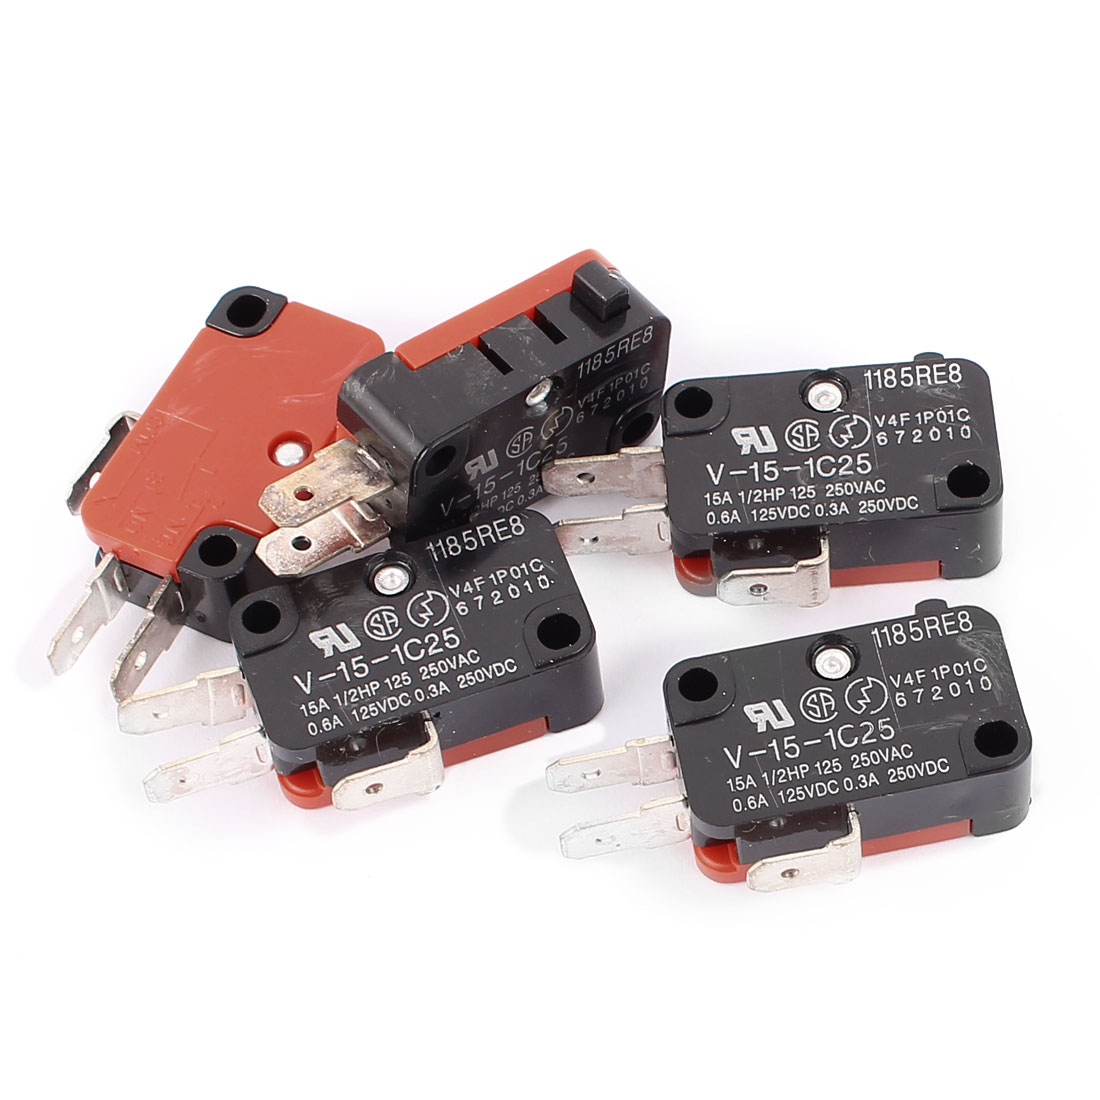 5 Pcs V-15-1C25 Snap Action Push Button SPDT Momentary Mini Limit Switch